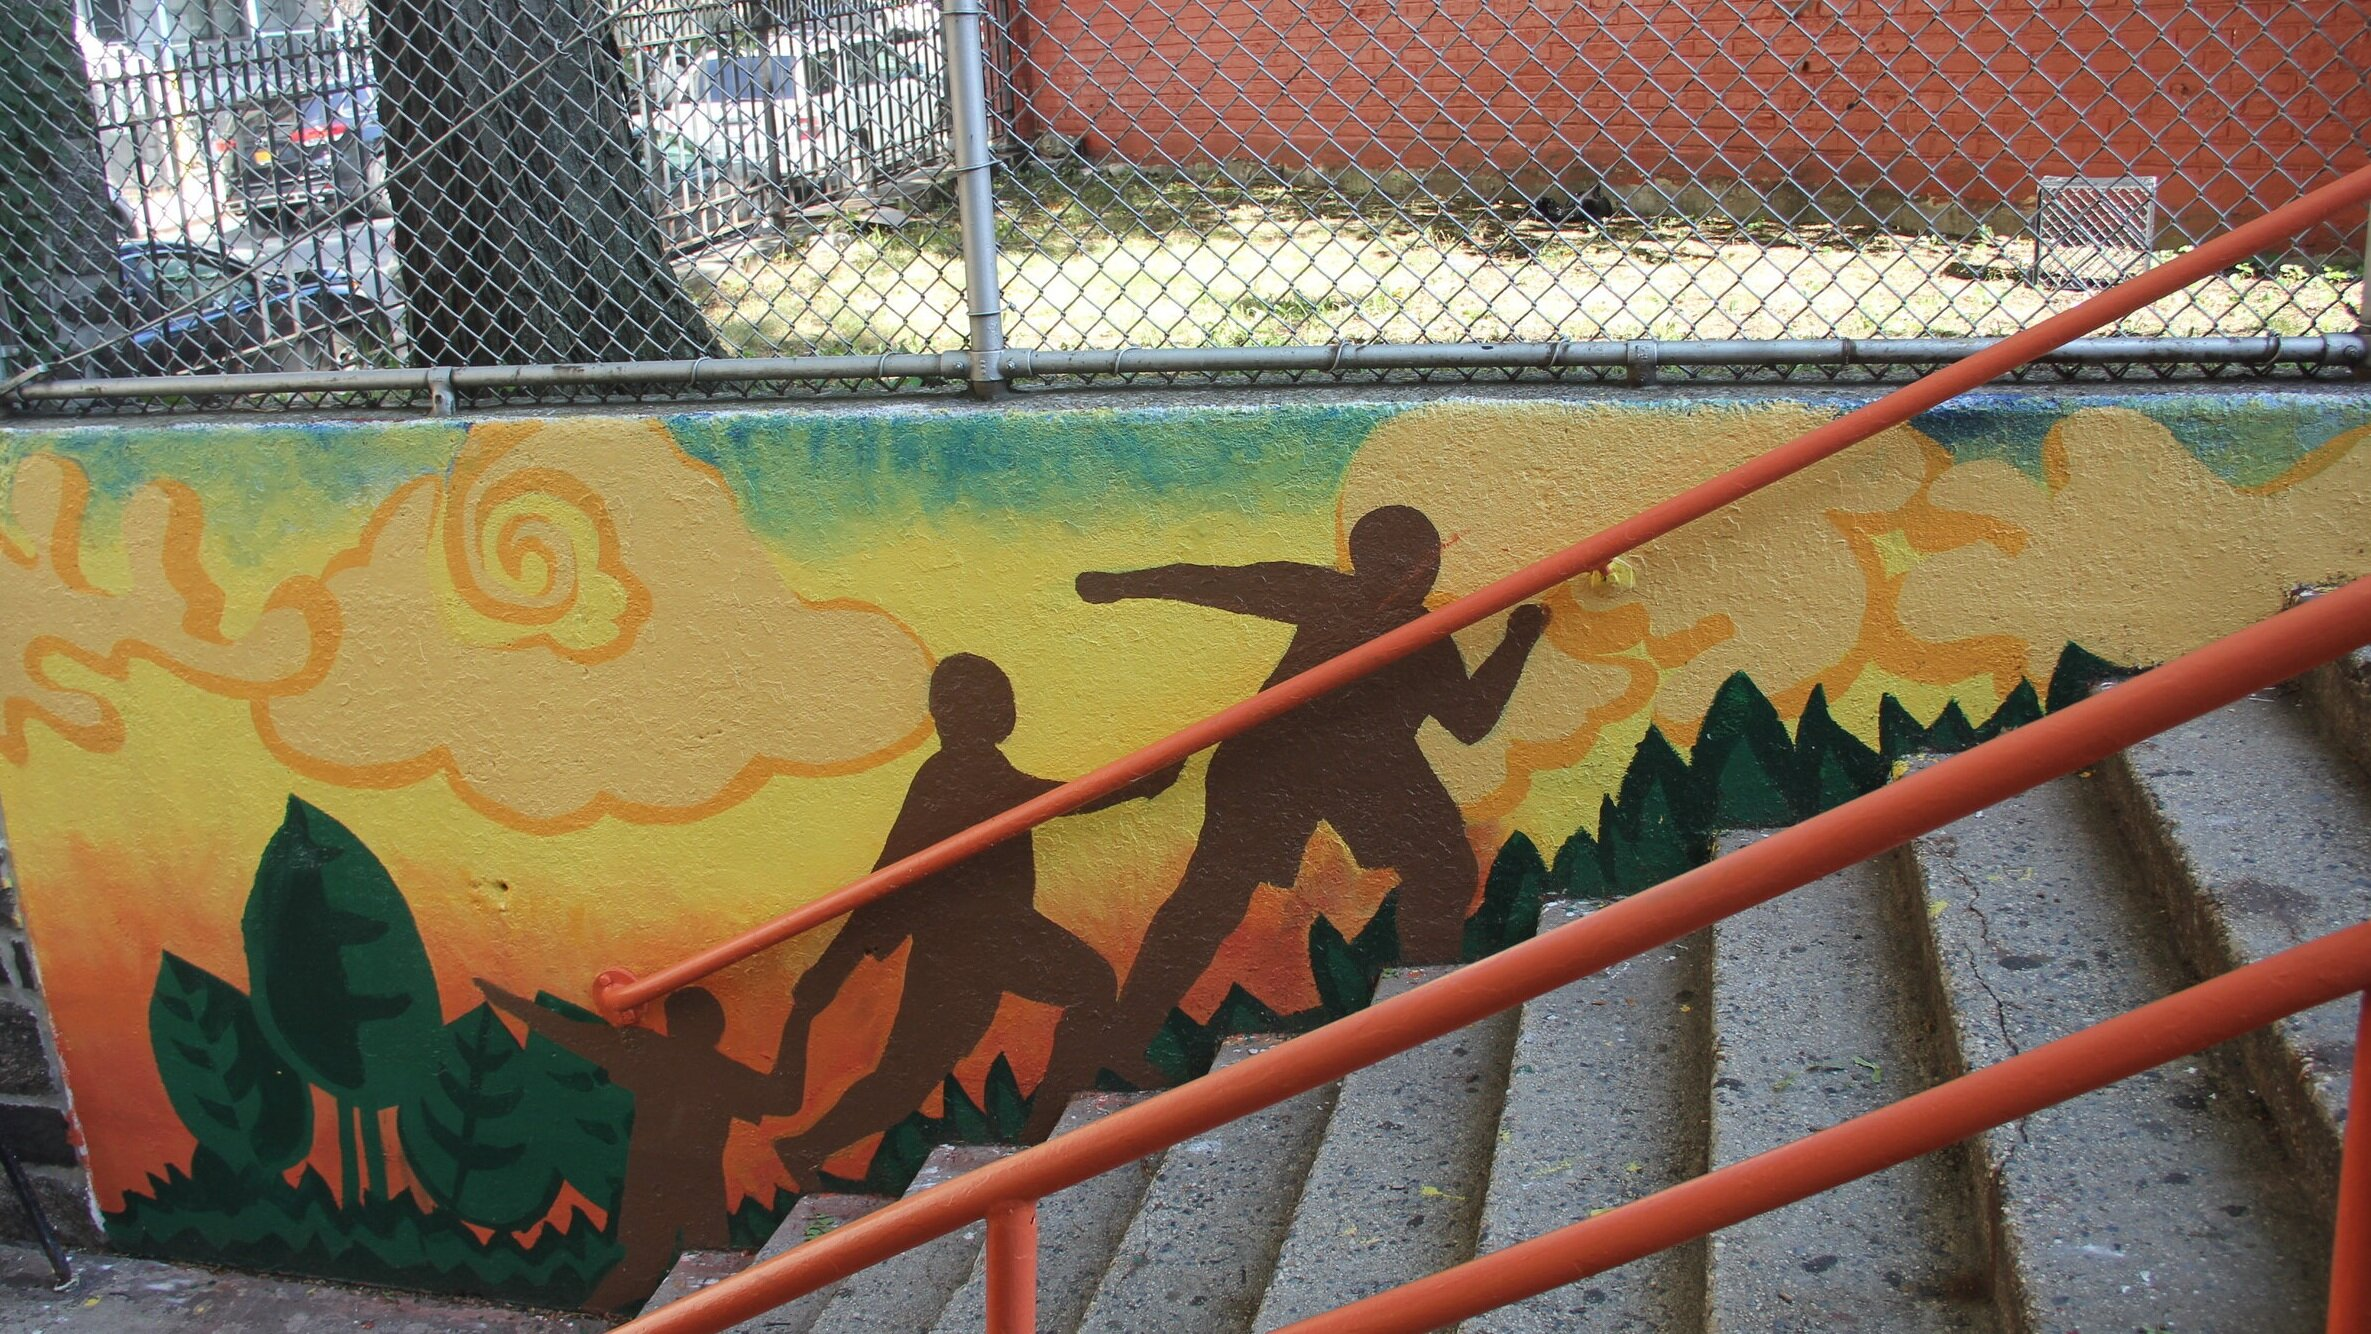 Sunrise - The murals flanking the north stairway feature abstract tropical plants and swirling clouds in shades of orange and yellow. Silhouettes of family and friends climb the stairs.